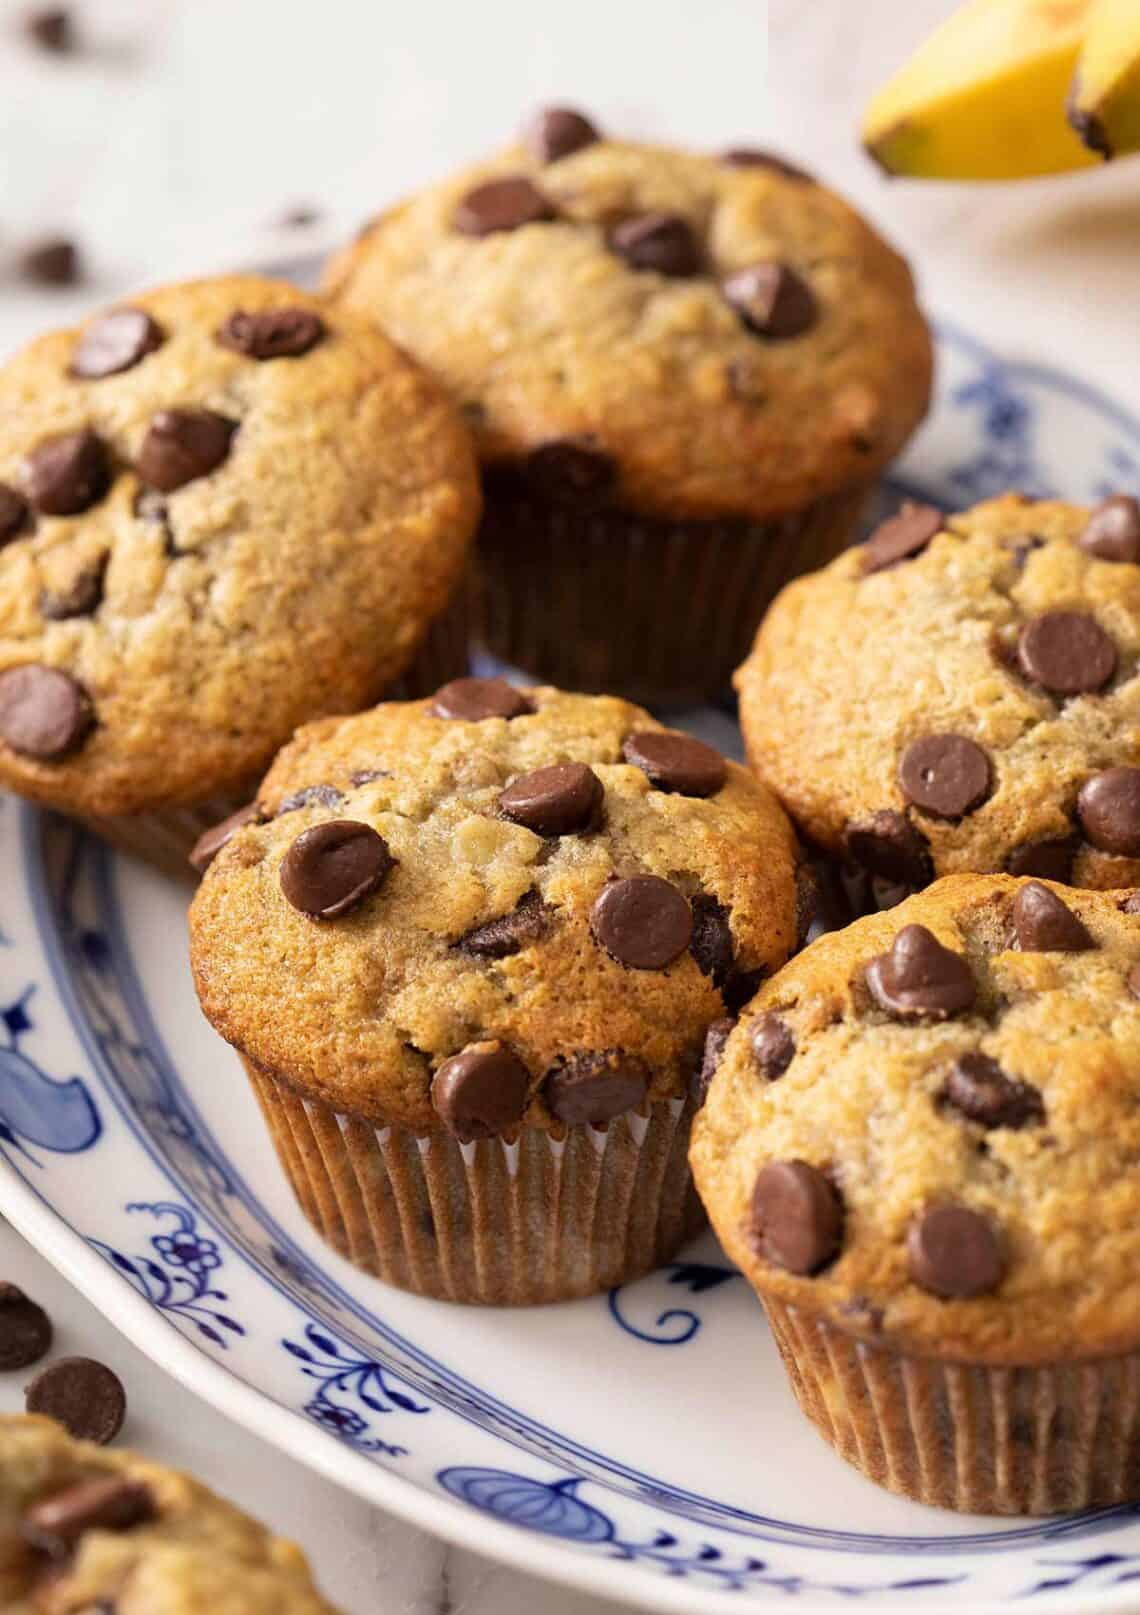 A close up of banana chocolate chip muffins